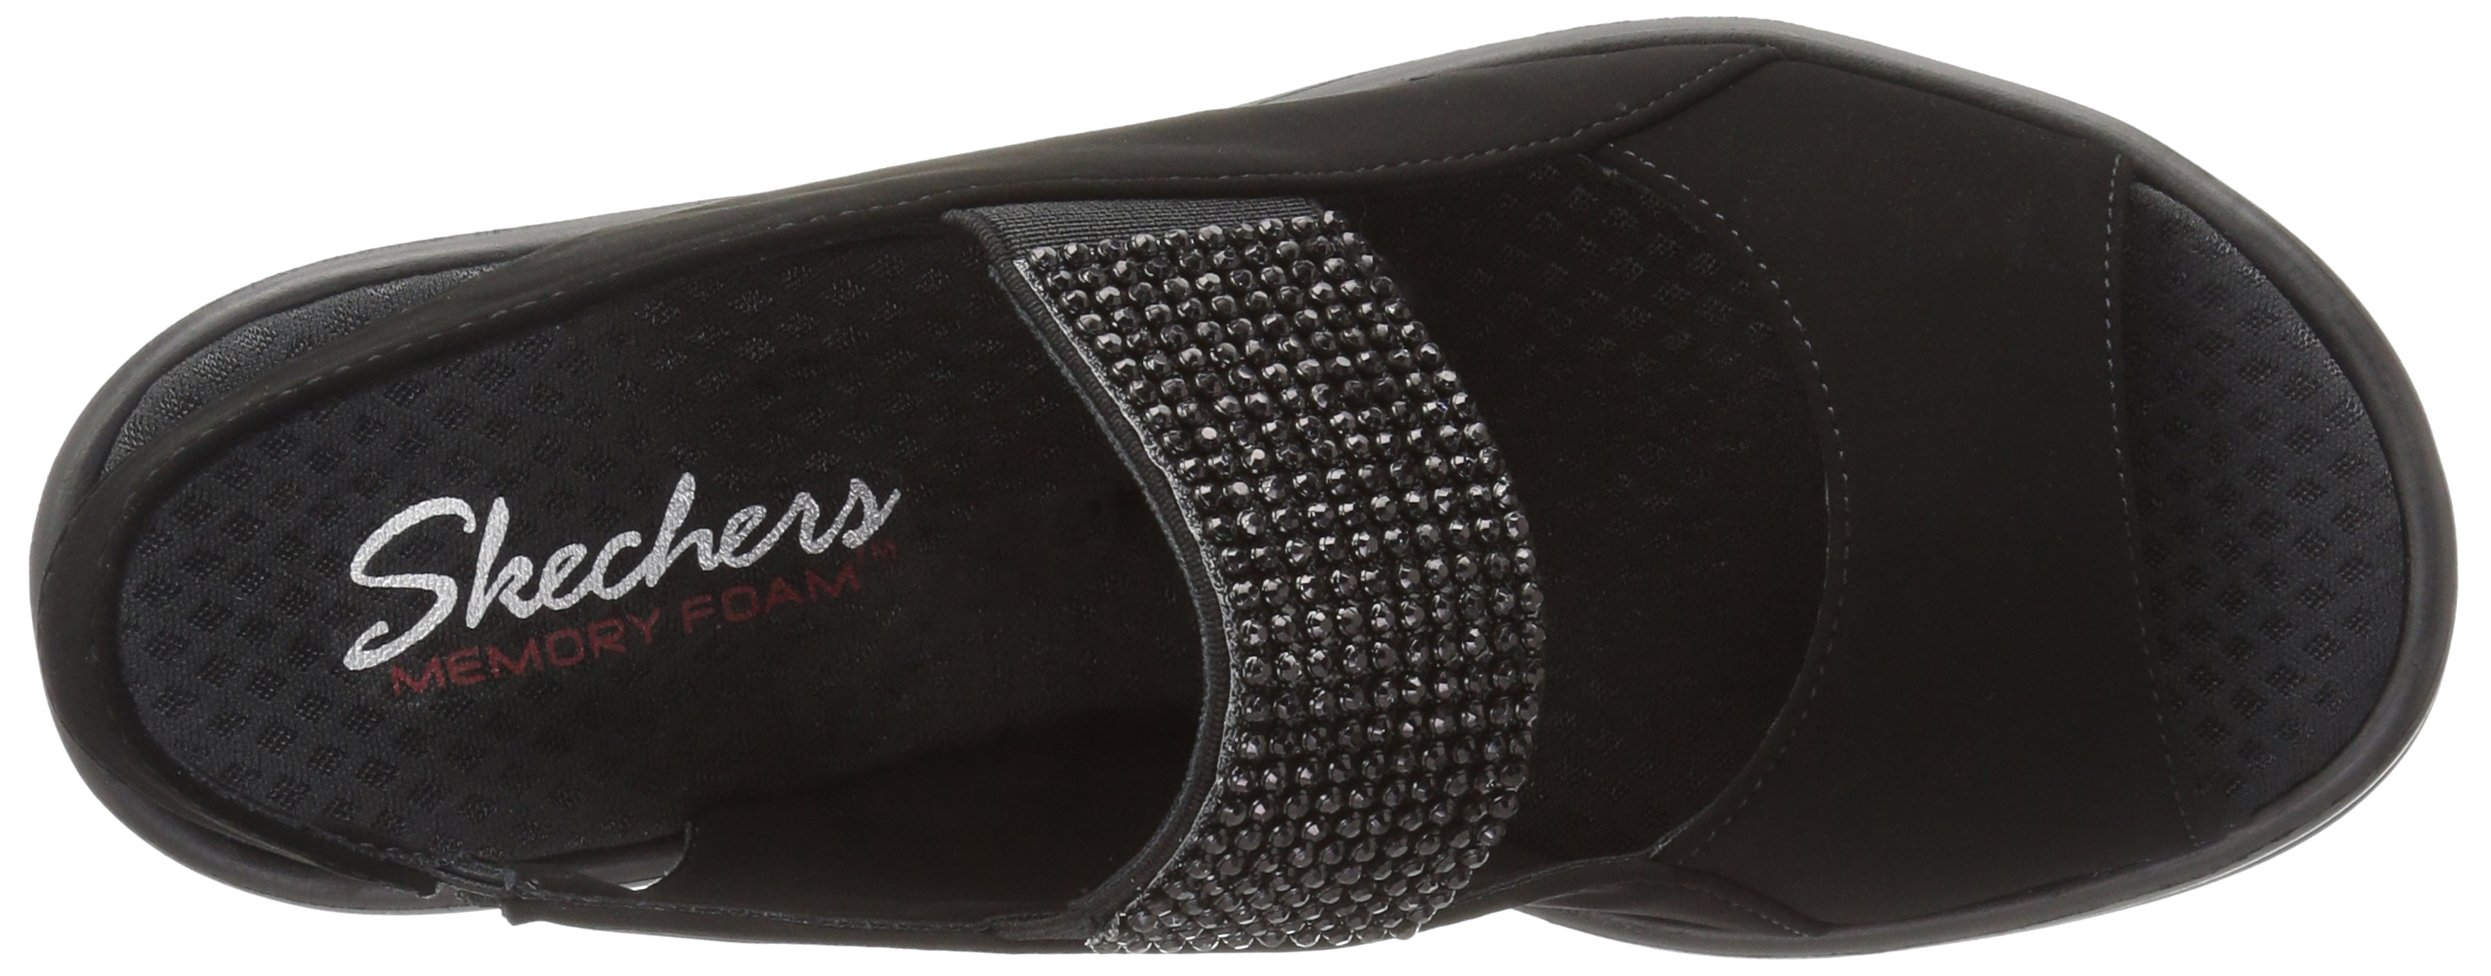 3ced46f07f80 Skechers Cali Women s Rumblers Sparkle on Wedge Sandal   Platforms   Wedges    Clothing